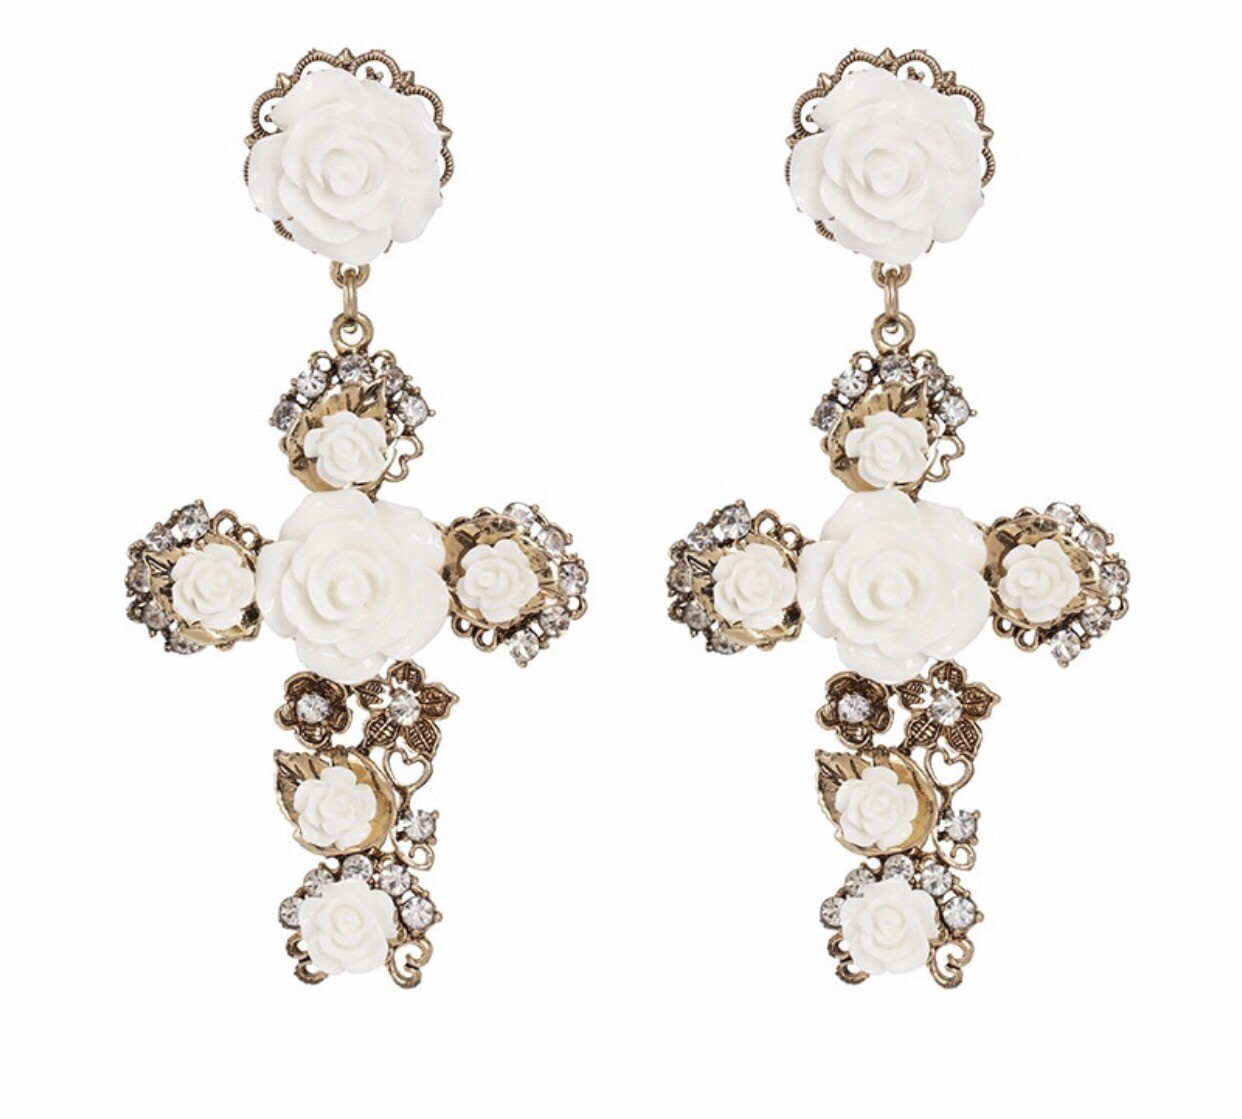 BAROQUE CROSS Earrings